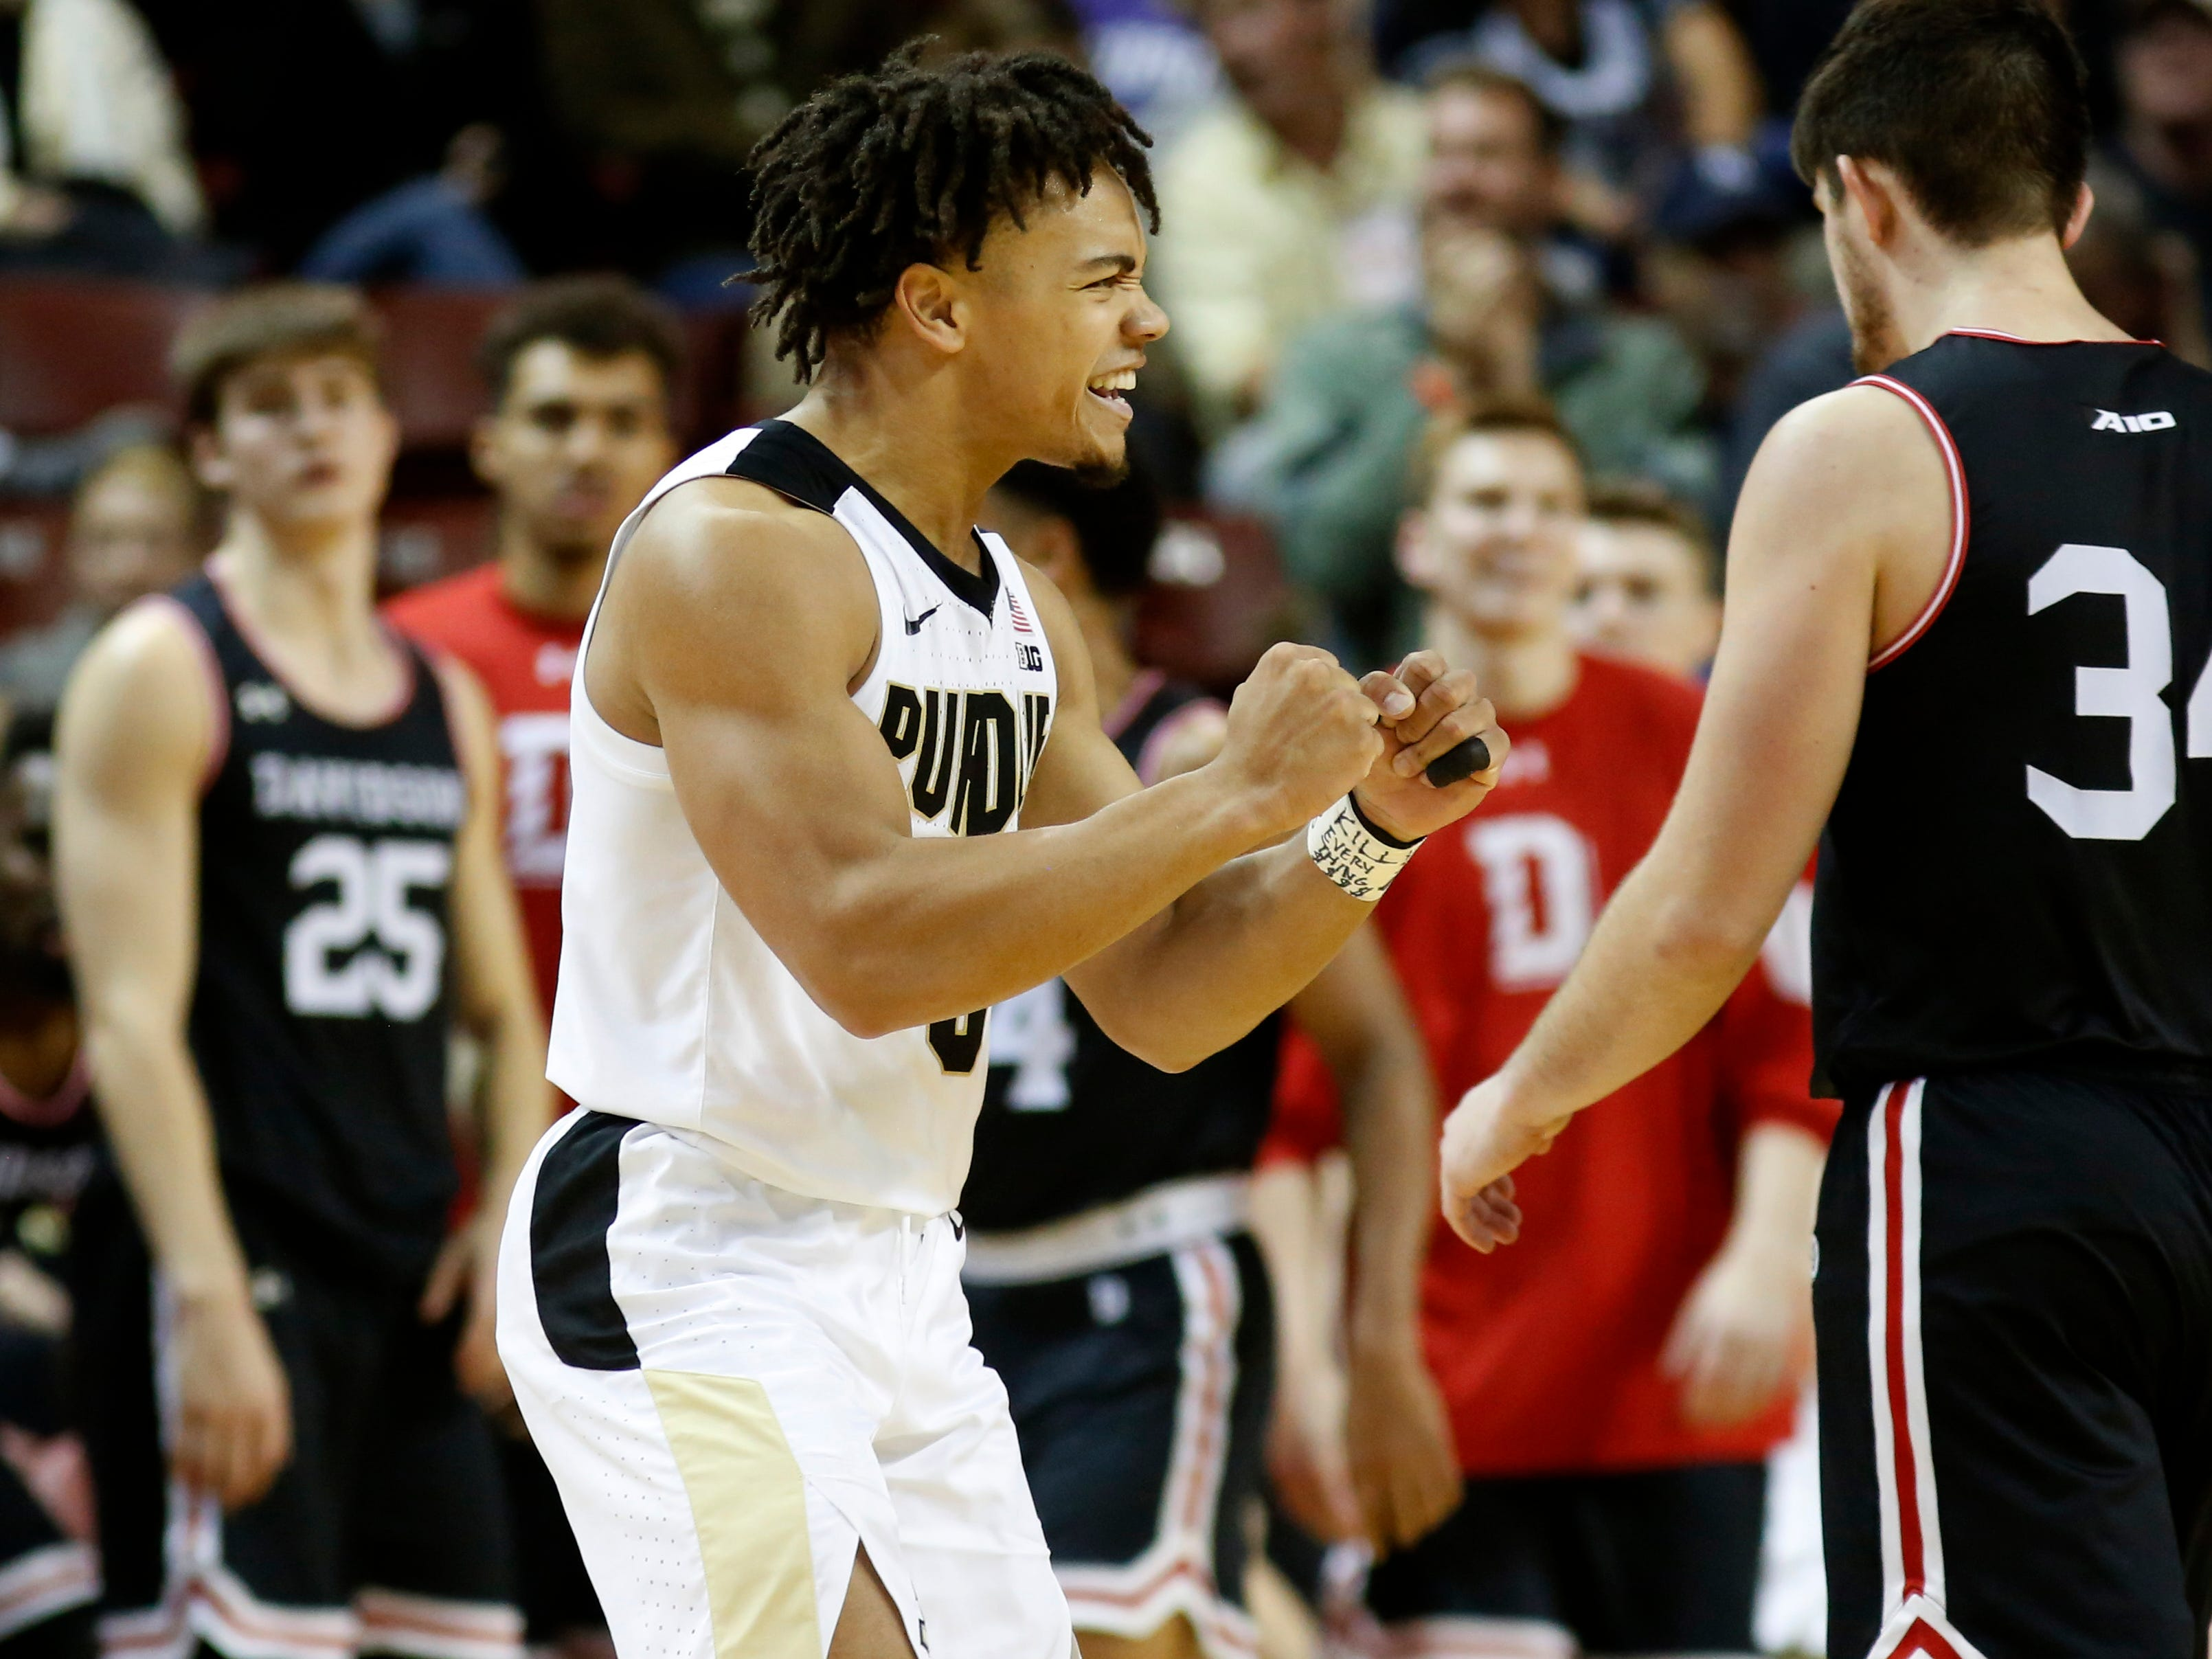 Purdue's Carsen Edwards reacts afte his team started pulling away from Davidson in the second half of an NCAA college basketball game at the Charleston Classic at TD Arena, Friday, Nov. 16, 2018, in Charleston, S.C. (AP Photo/Mic Smith)